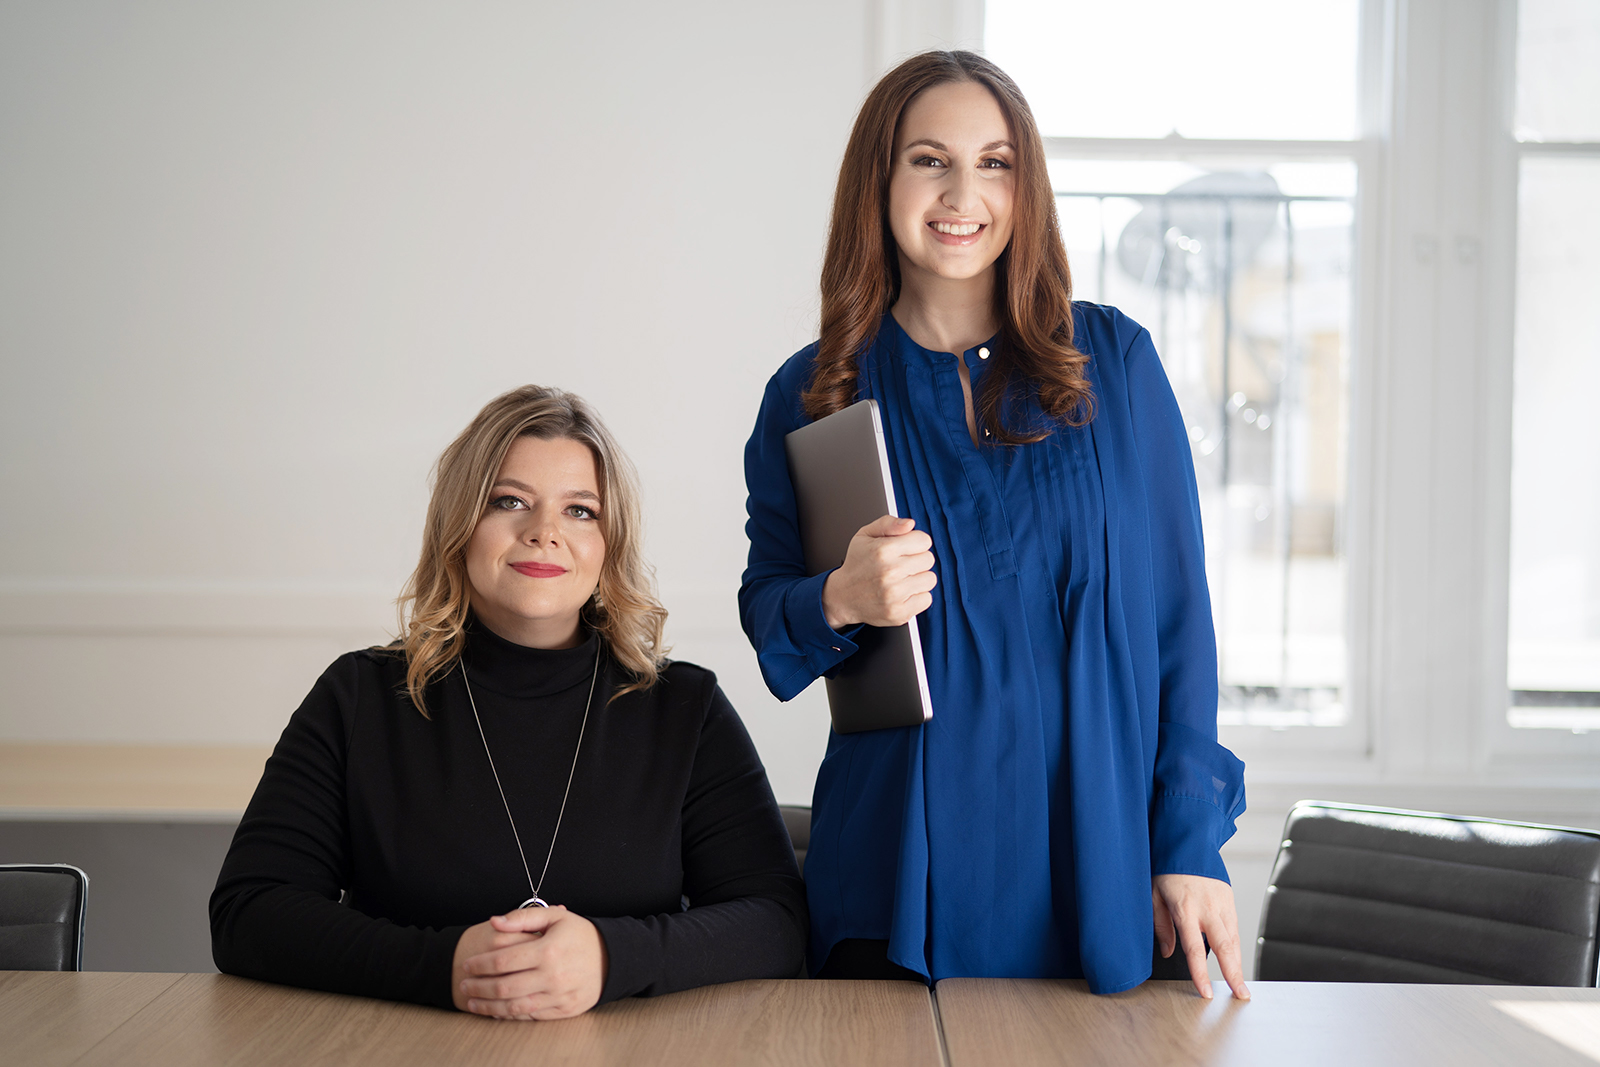 Cofounders of care giving startup Winnie, Sara Mauskopf and Anne Halsall, pose for a portrait in the boardroom.